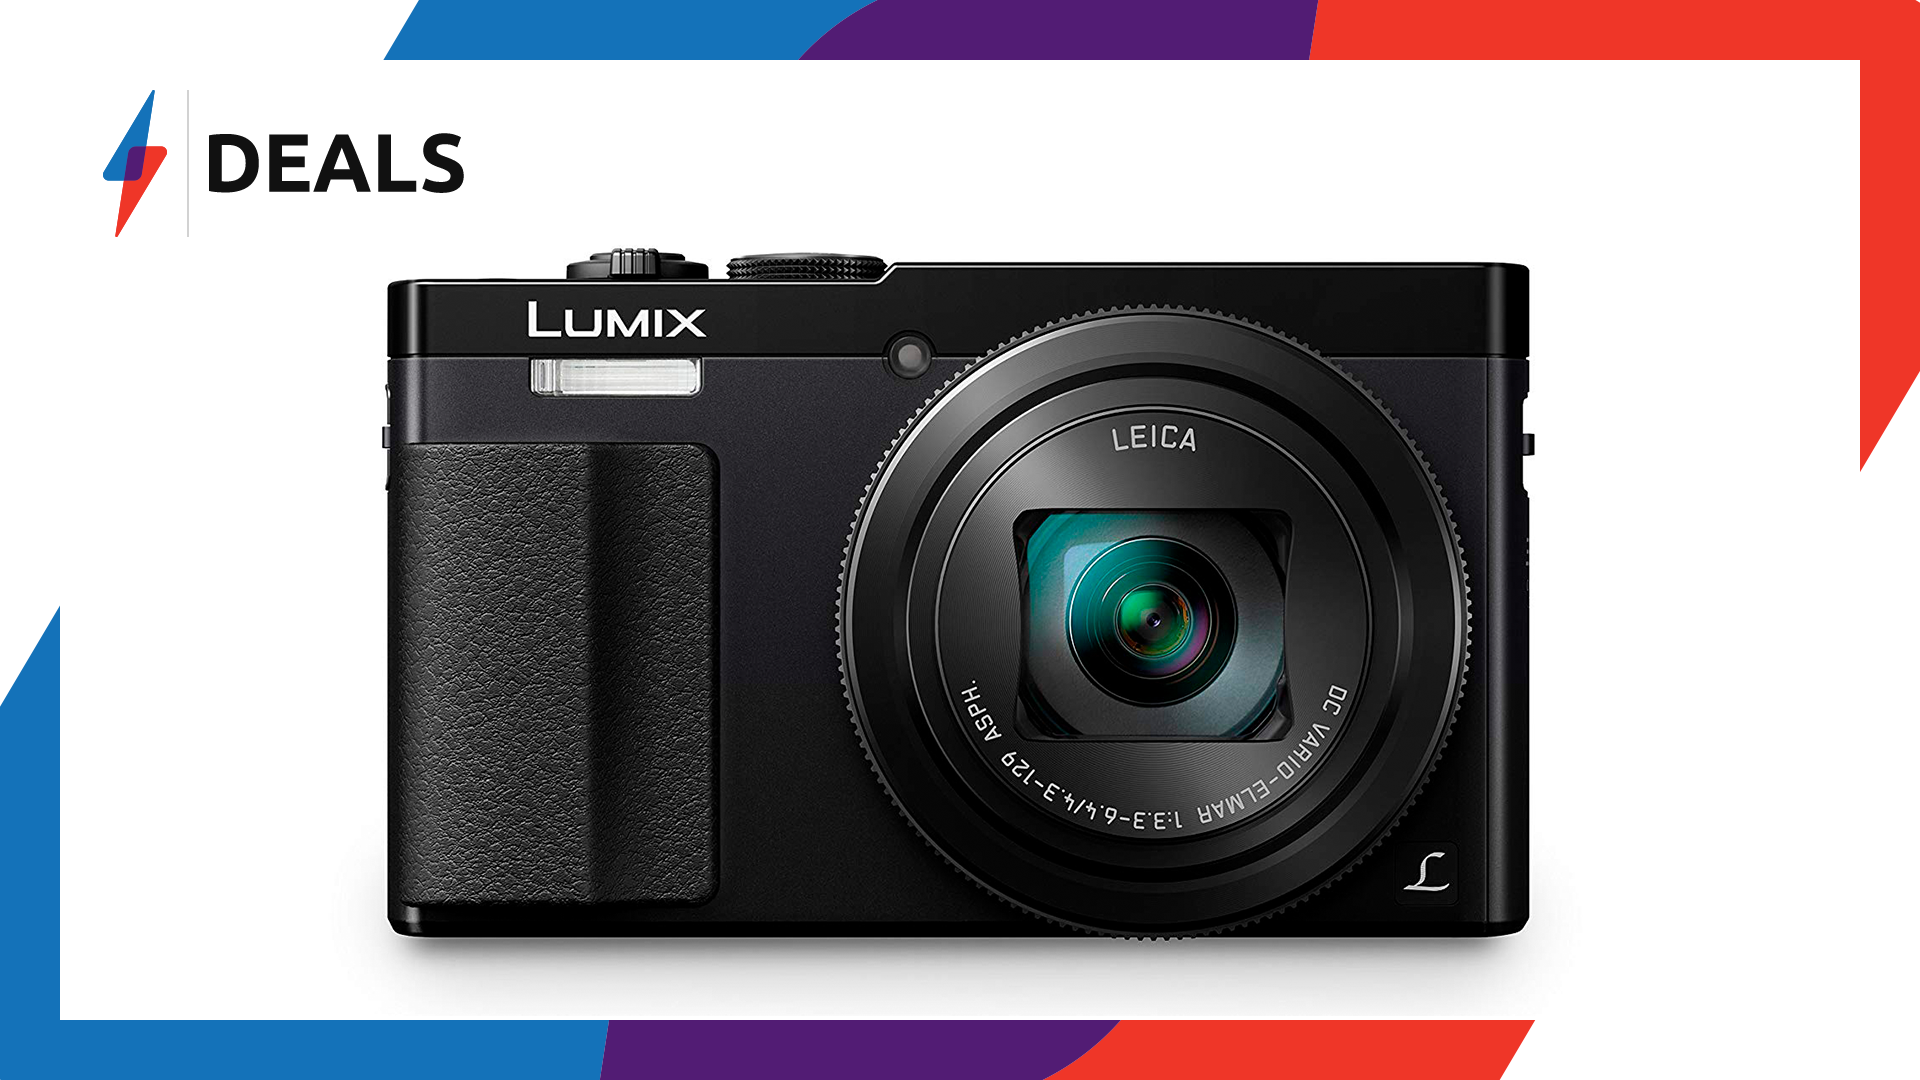 For today only, the Panasonic Lumix TZ70 is now at is cheapest price since Black Friday